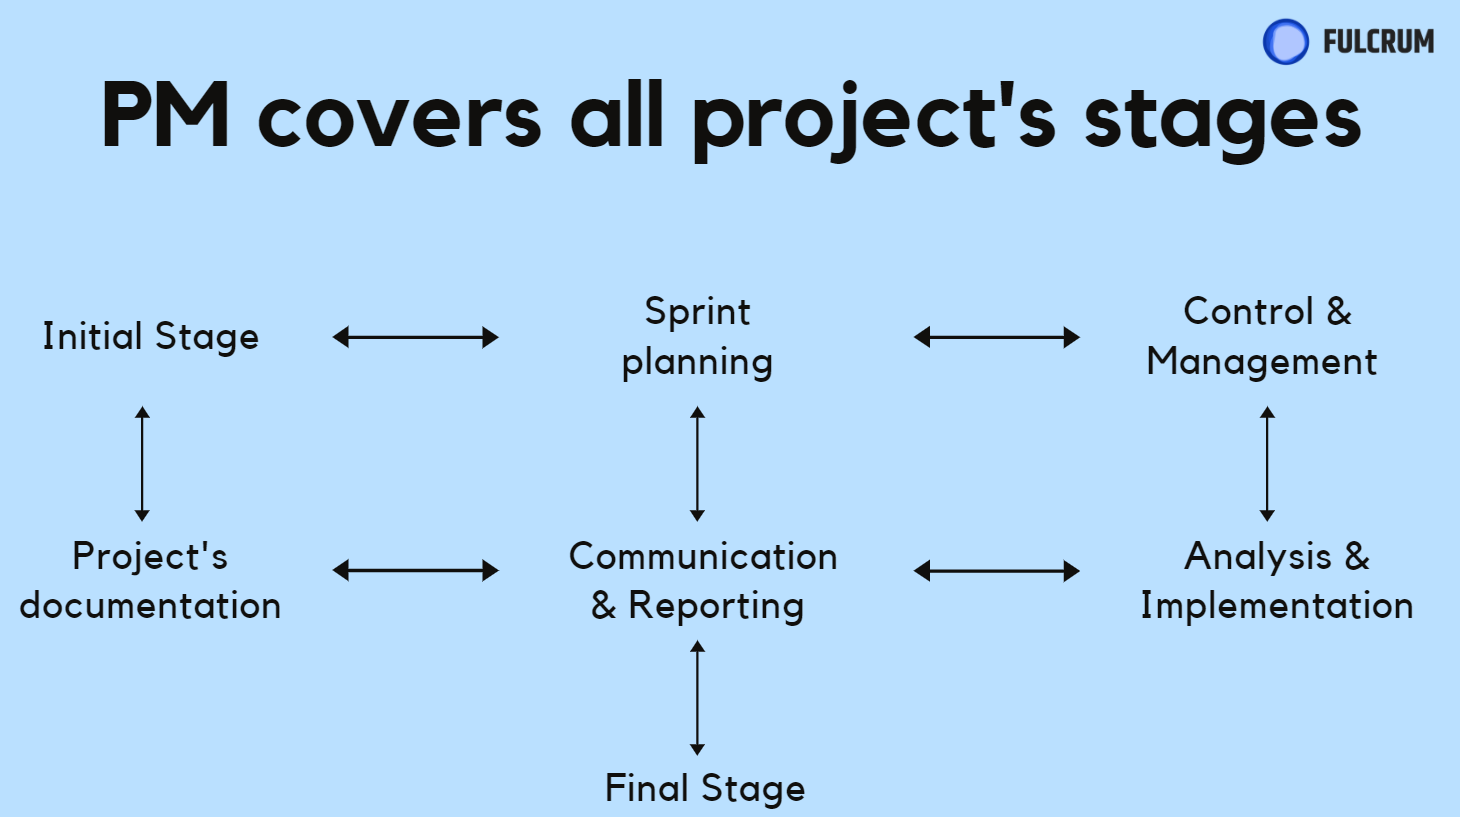 Project manager responsibilities at Fulcrum Rocks